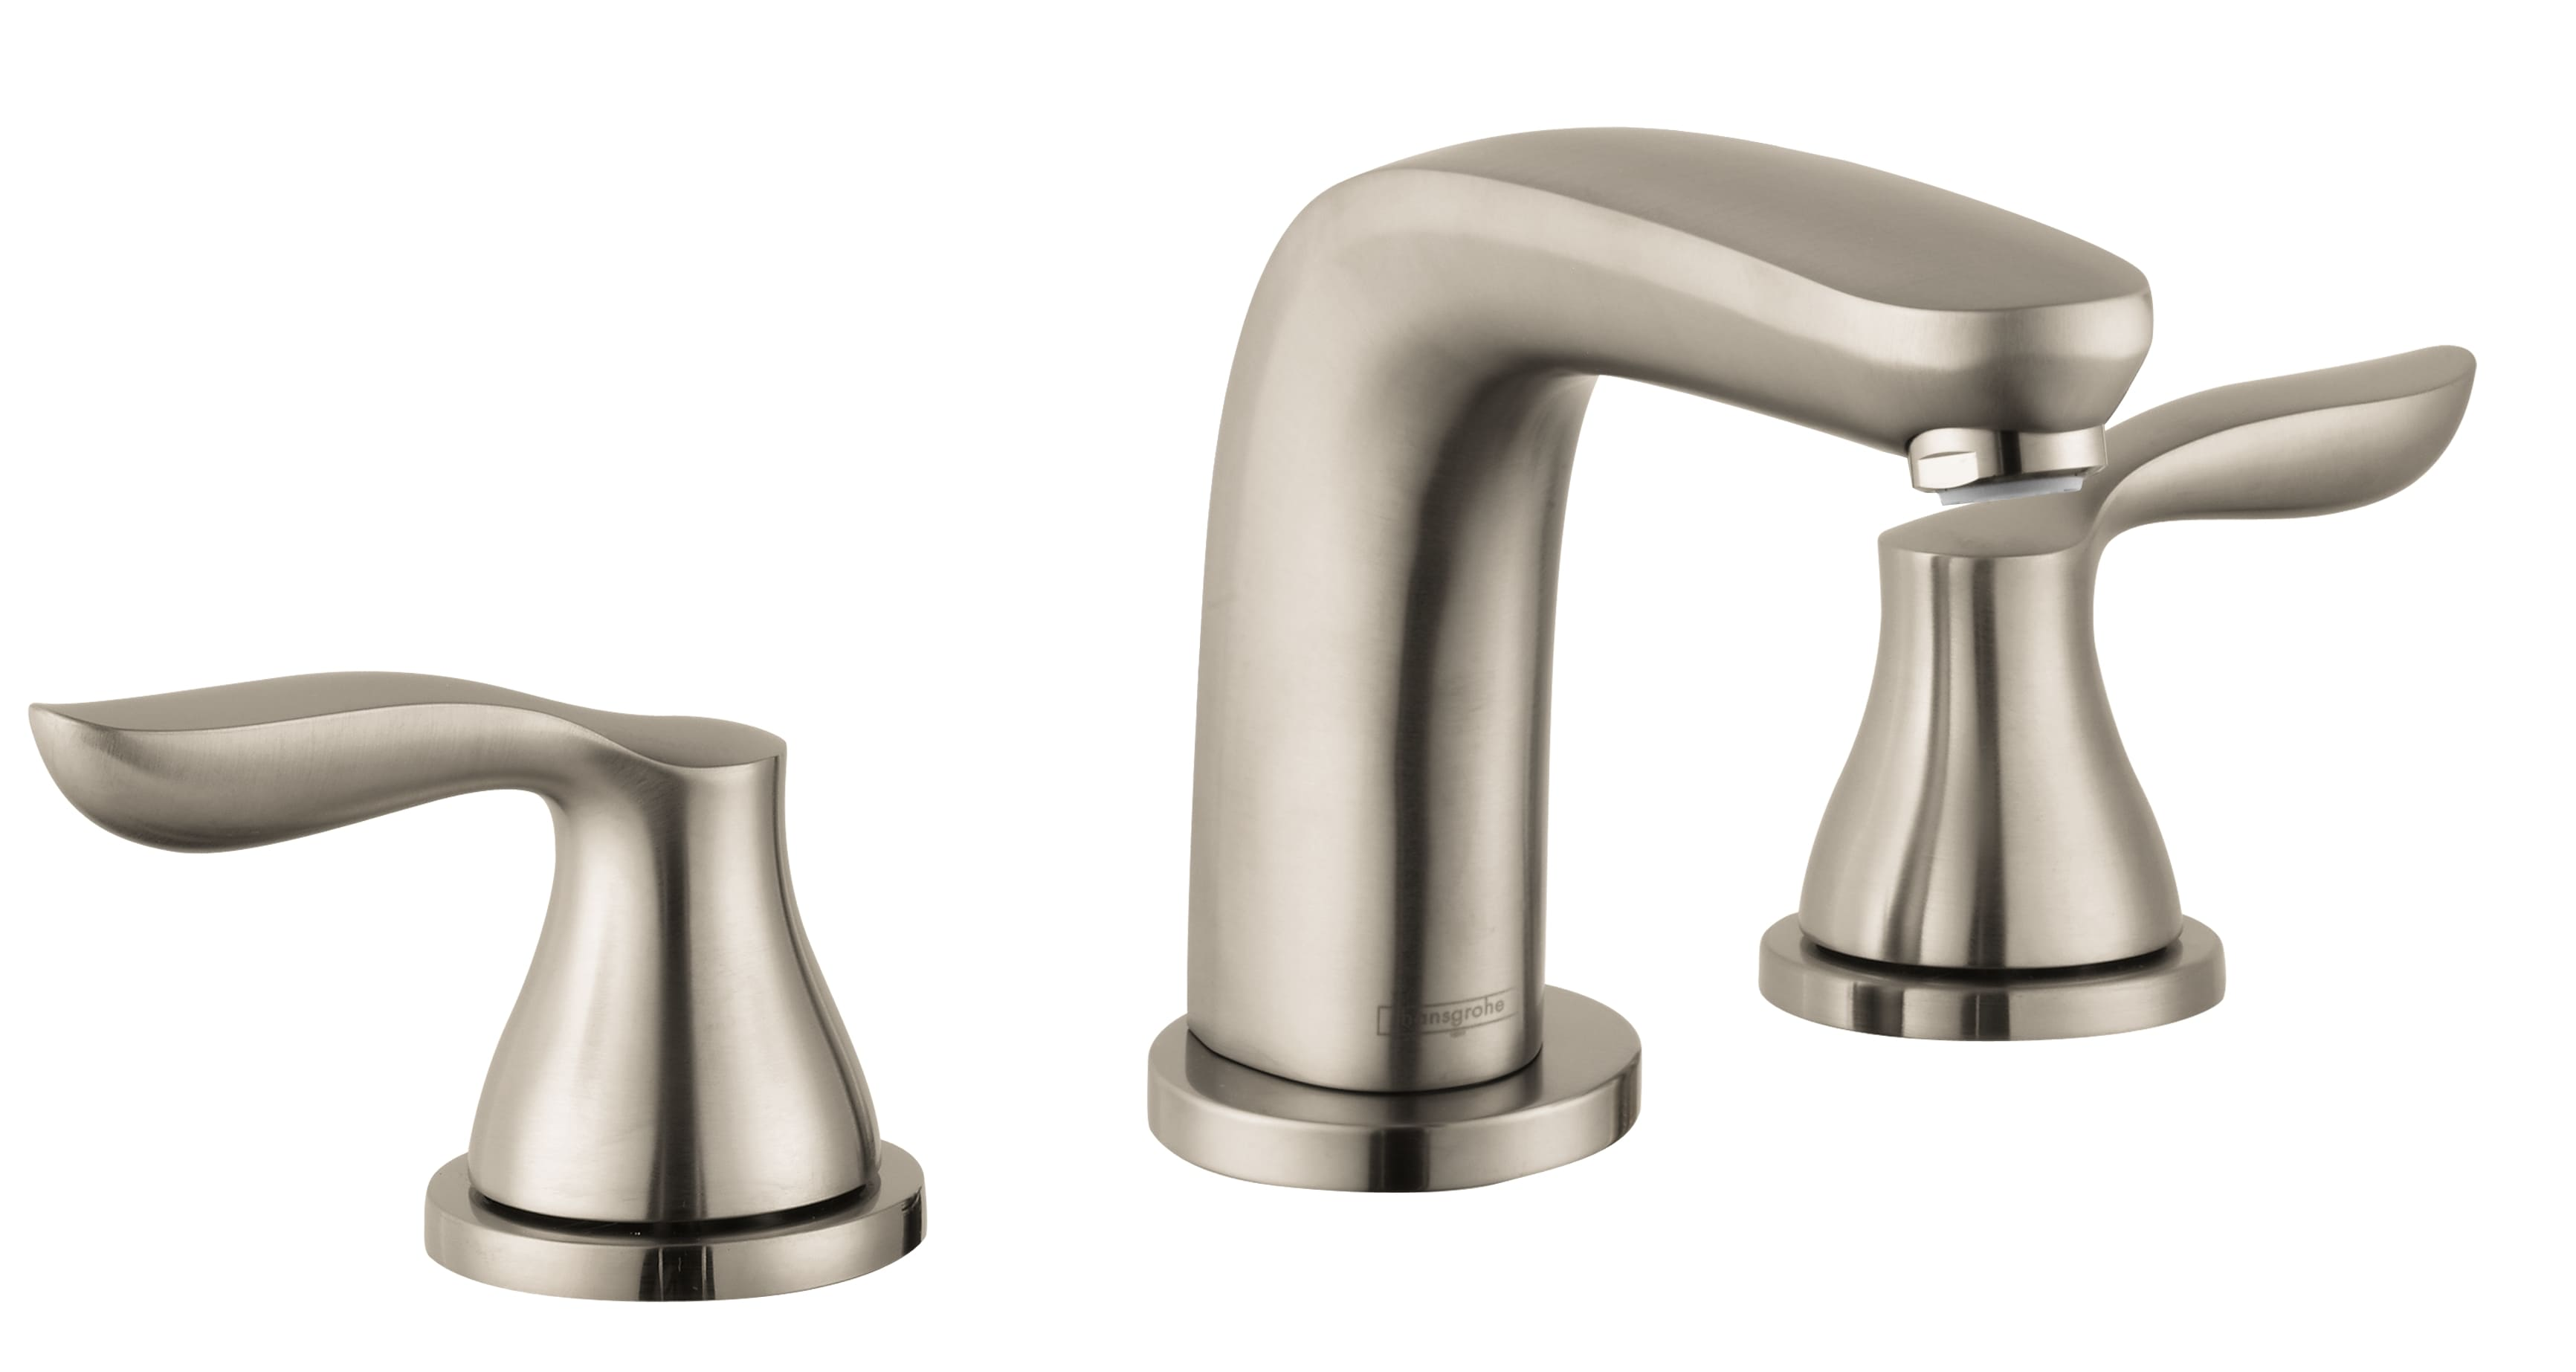 Hansgrohe 04170820 Brushed Nickel Solaris E Roman Tub Filler Faucet ...